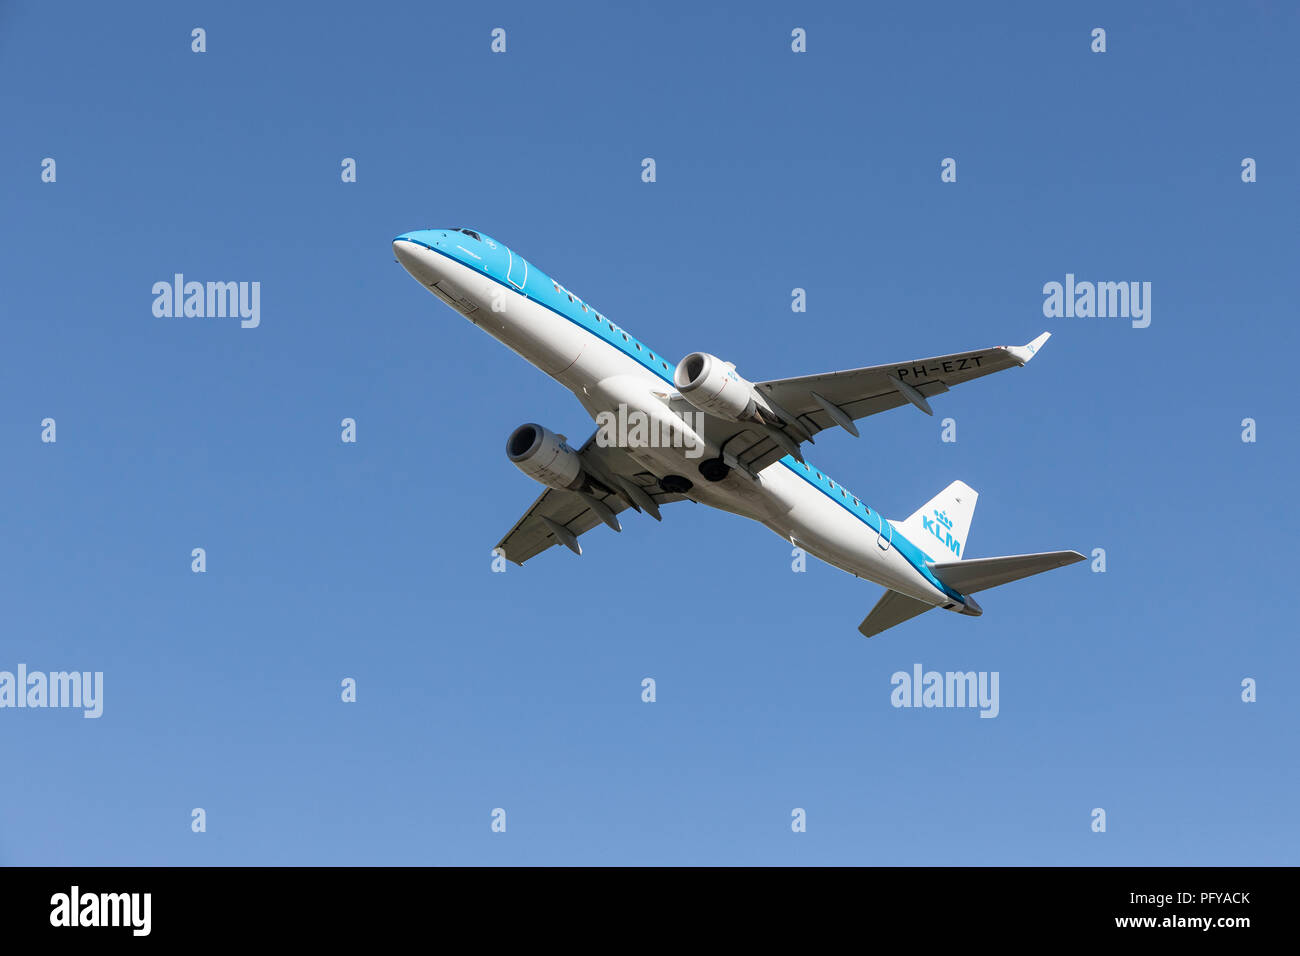 Airborne KLM Embraer twin engined airliner, PH-EZT - Stock Image